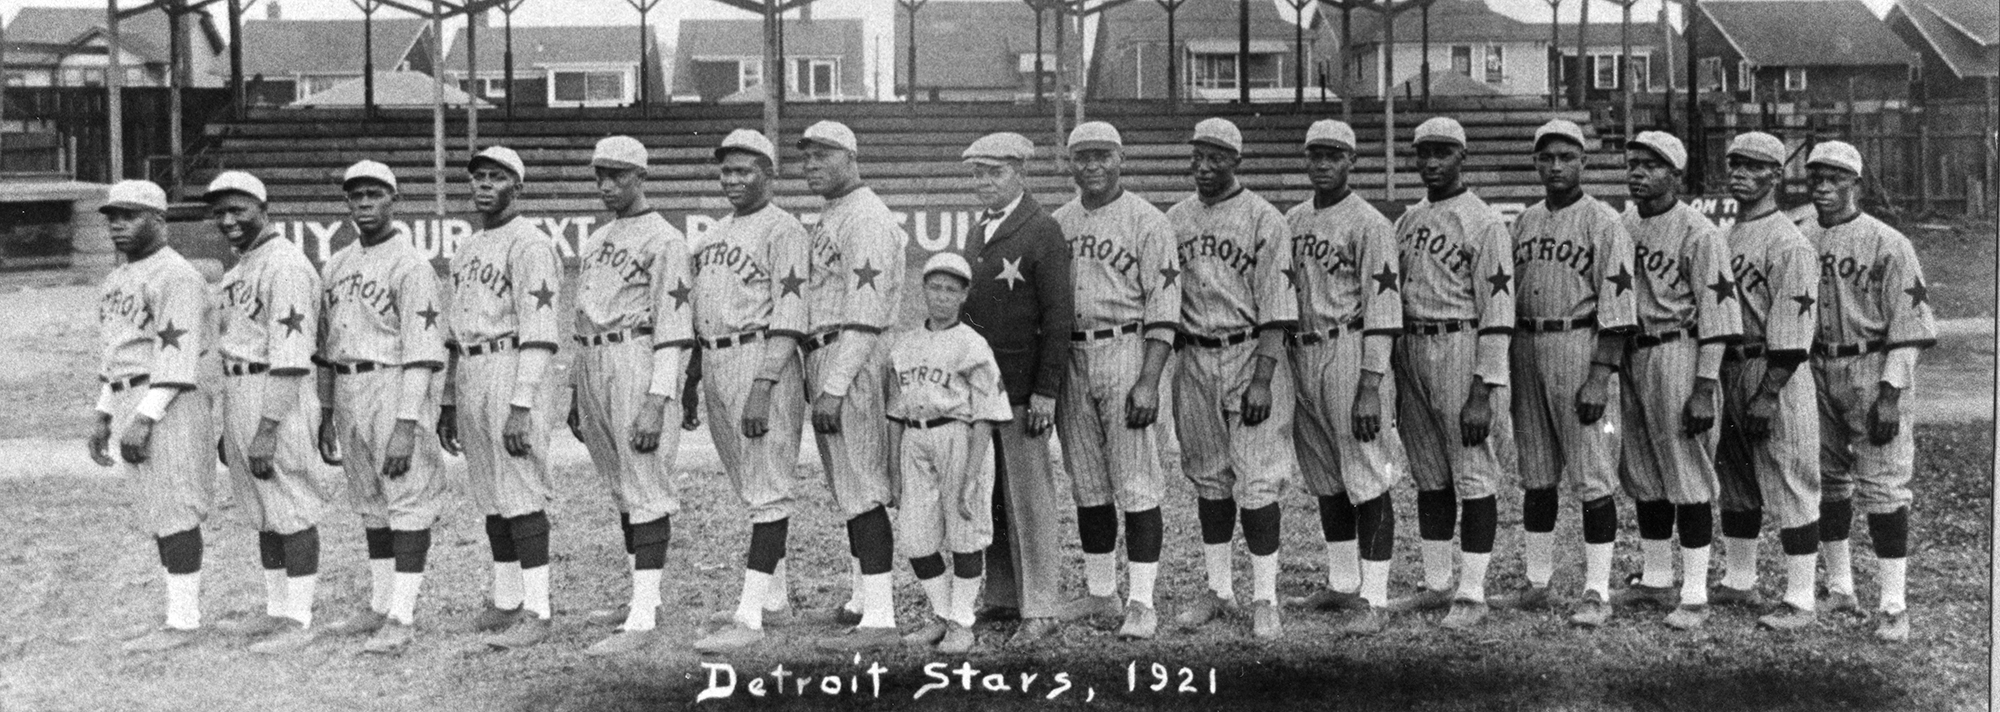 1921 Detroit Stars of the Negro National League (SABR-RUCKER ARCHIVE)